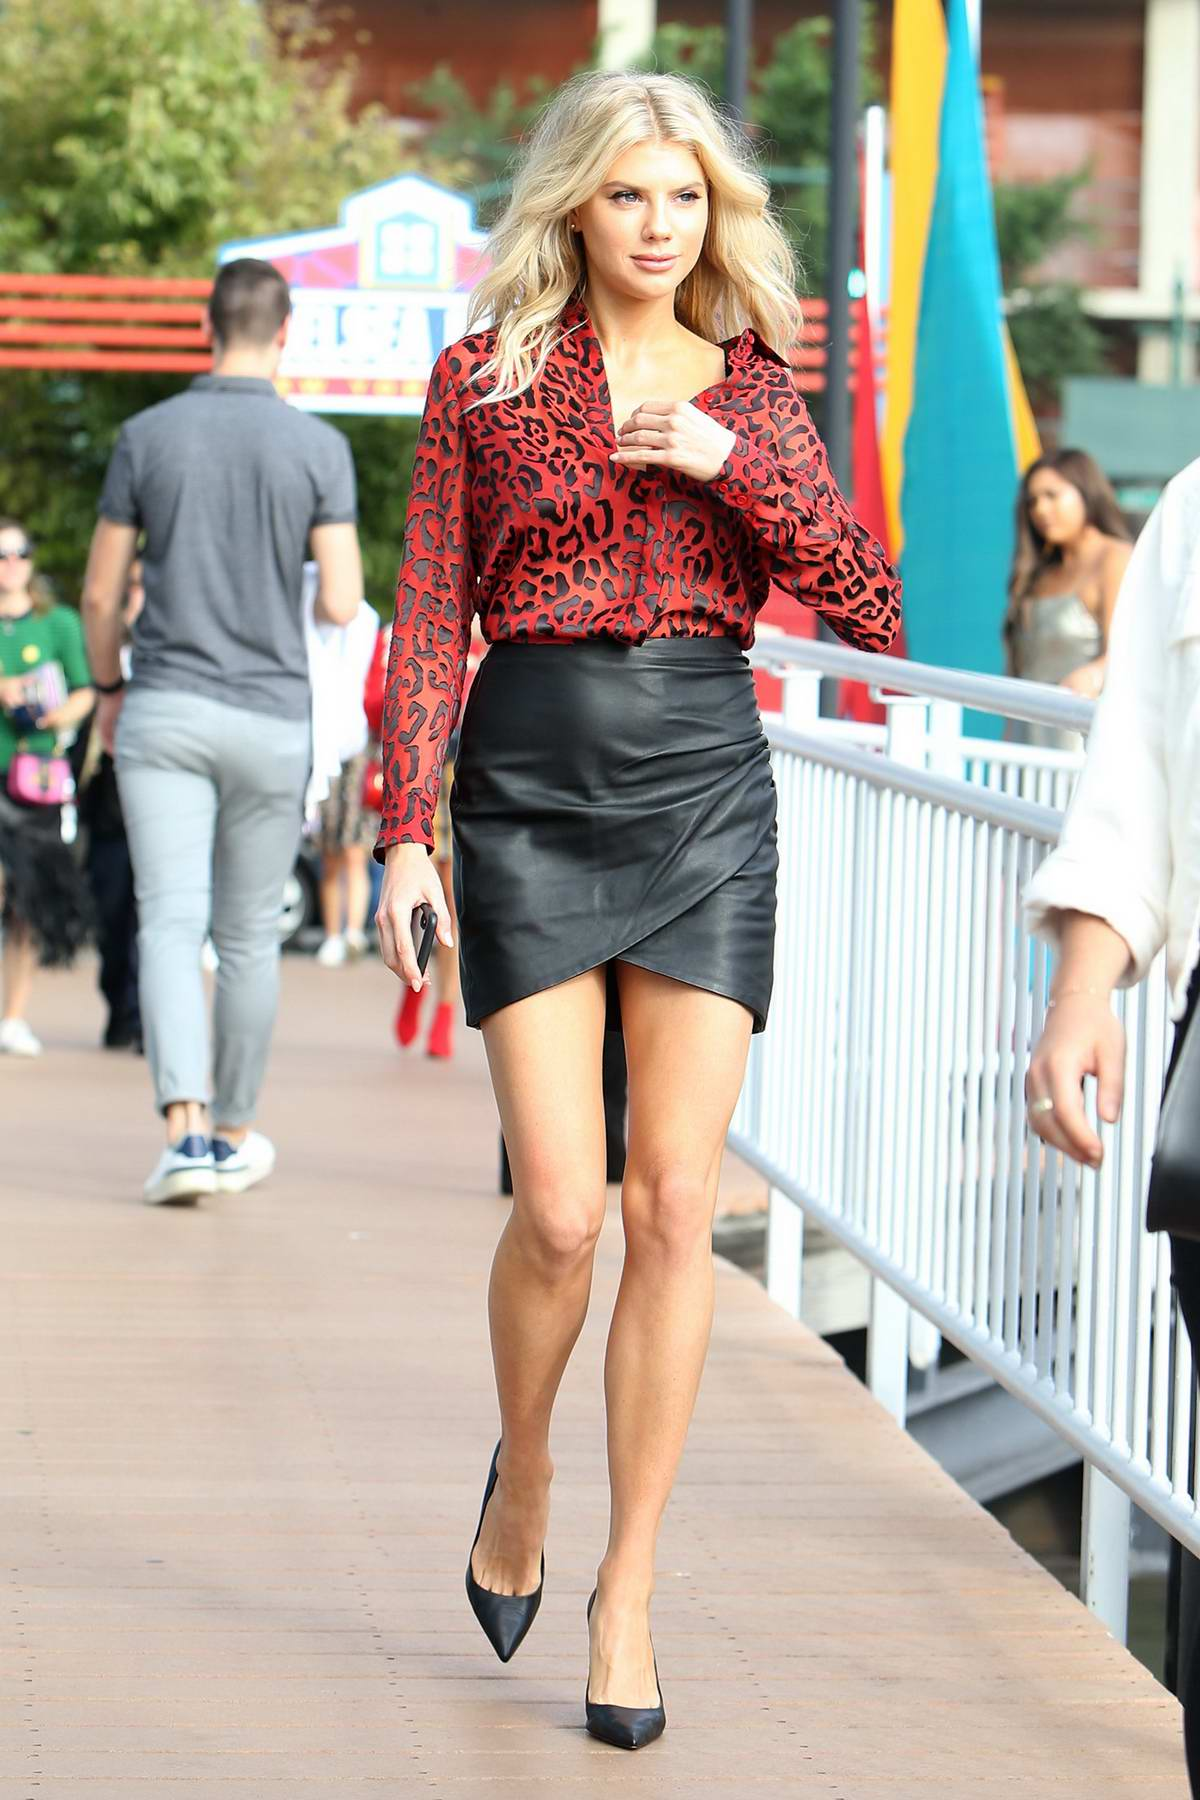 Charlotte McKinney wearing a red animal print shirt with black leather skirt as she arrives at Chelsea Piers for the Alice+Olivia Show during New York Fashion Week in New York City